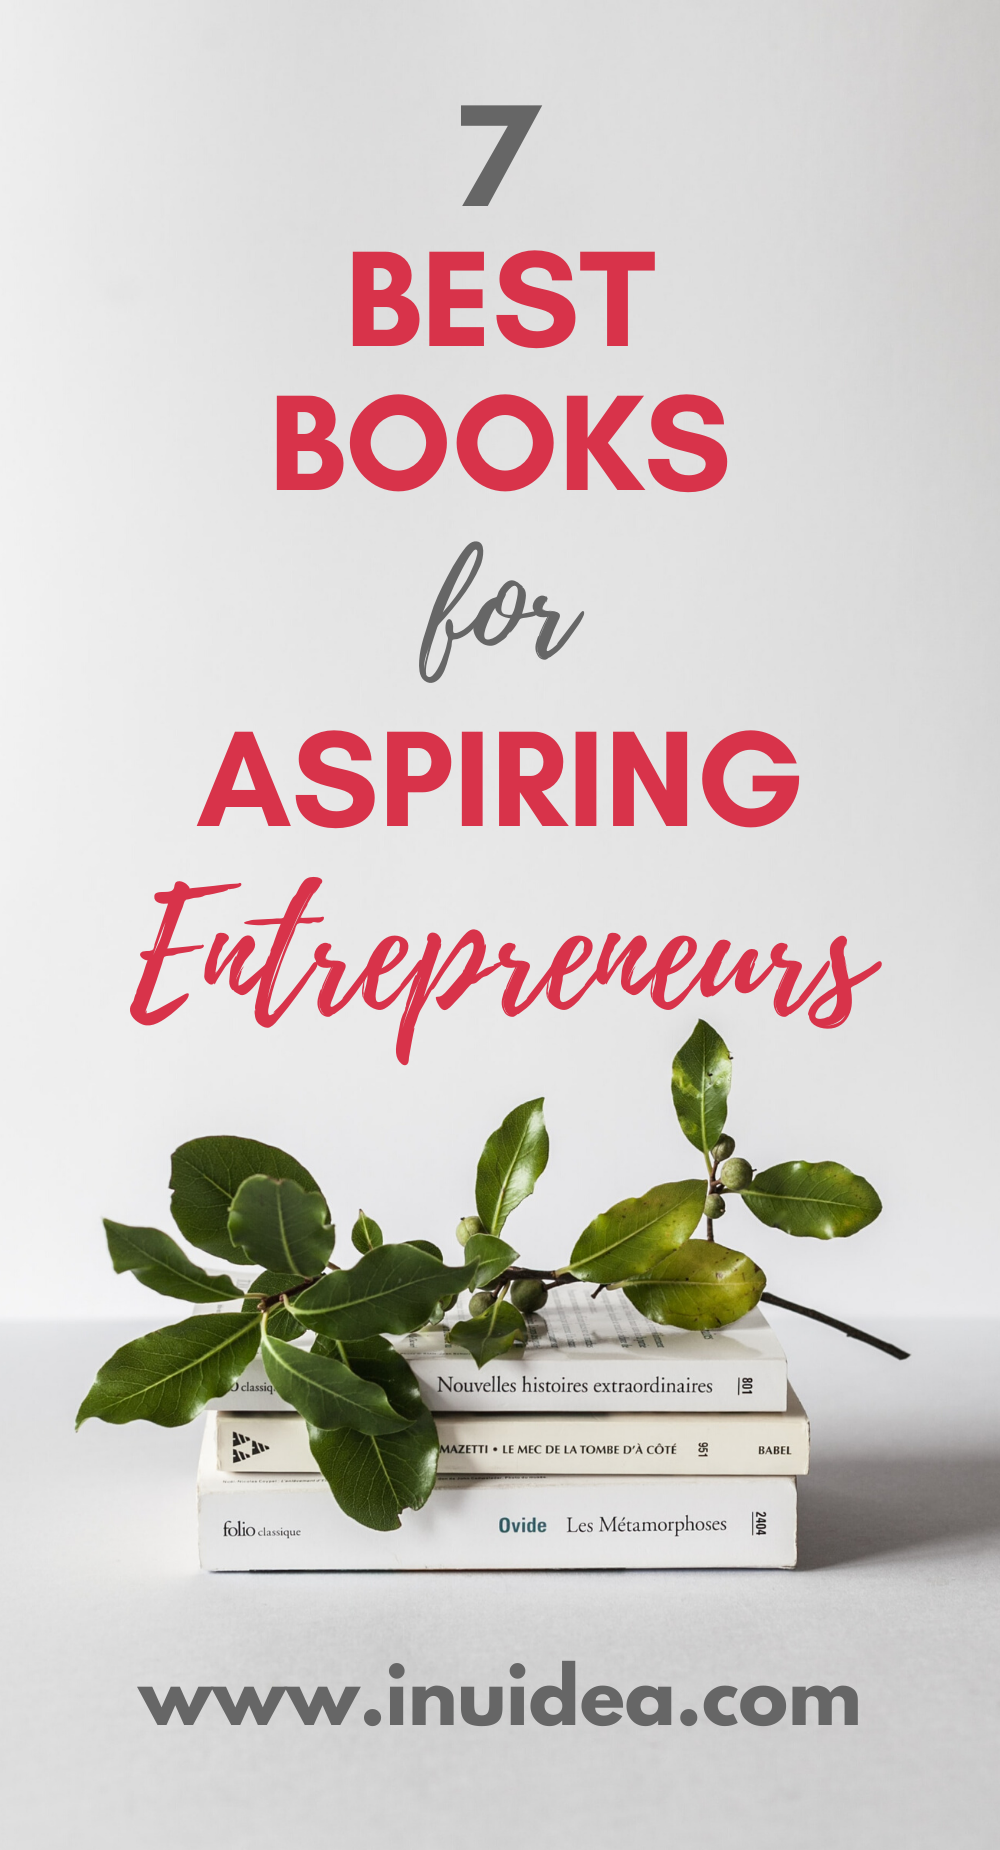 The 7 Best Books for Aspiring Entrepreneurs